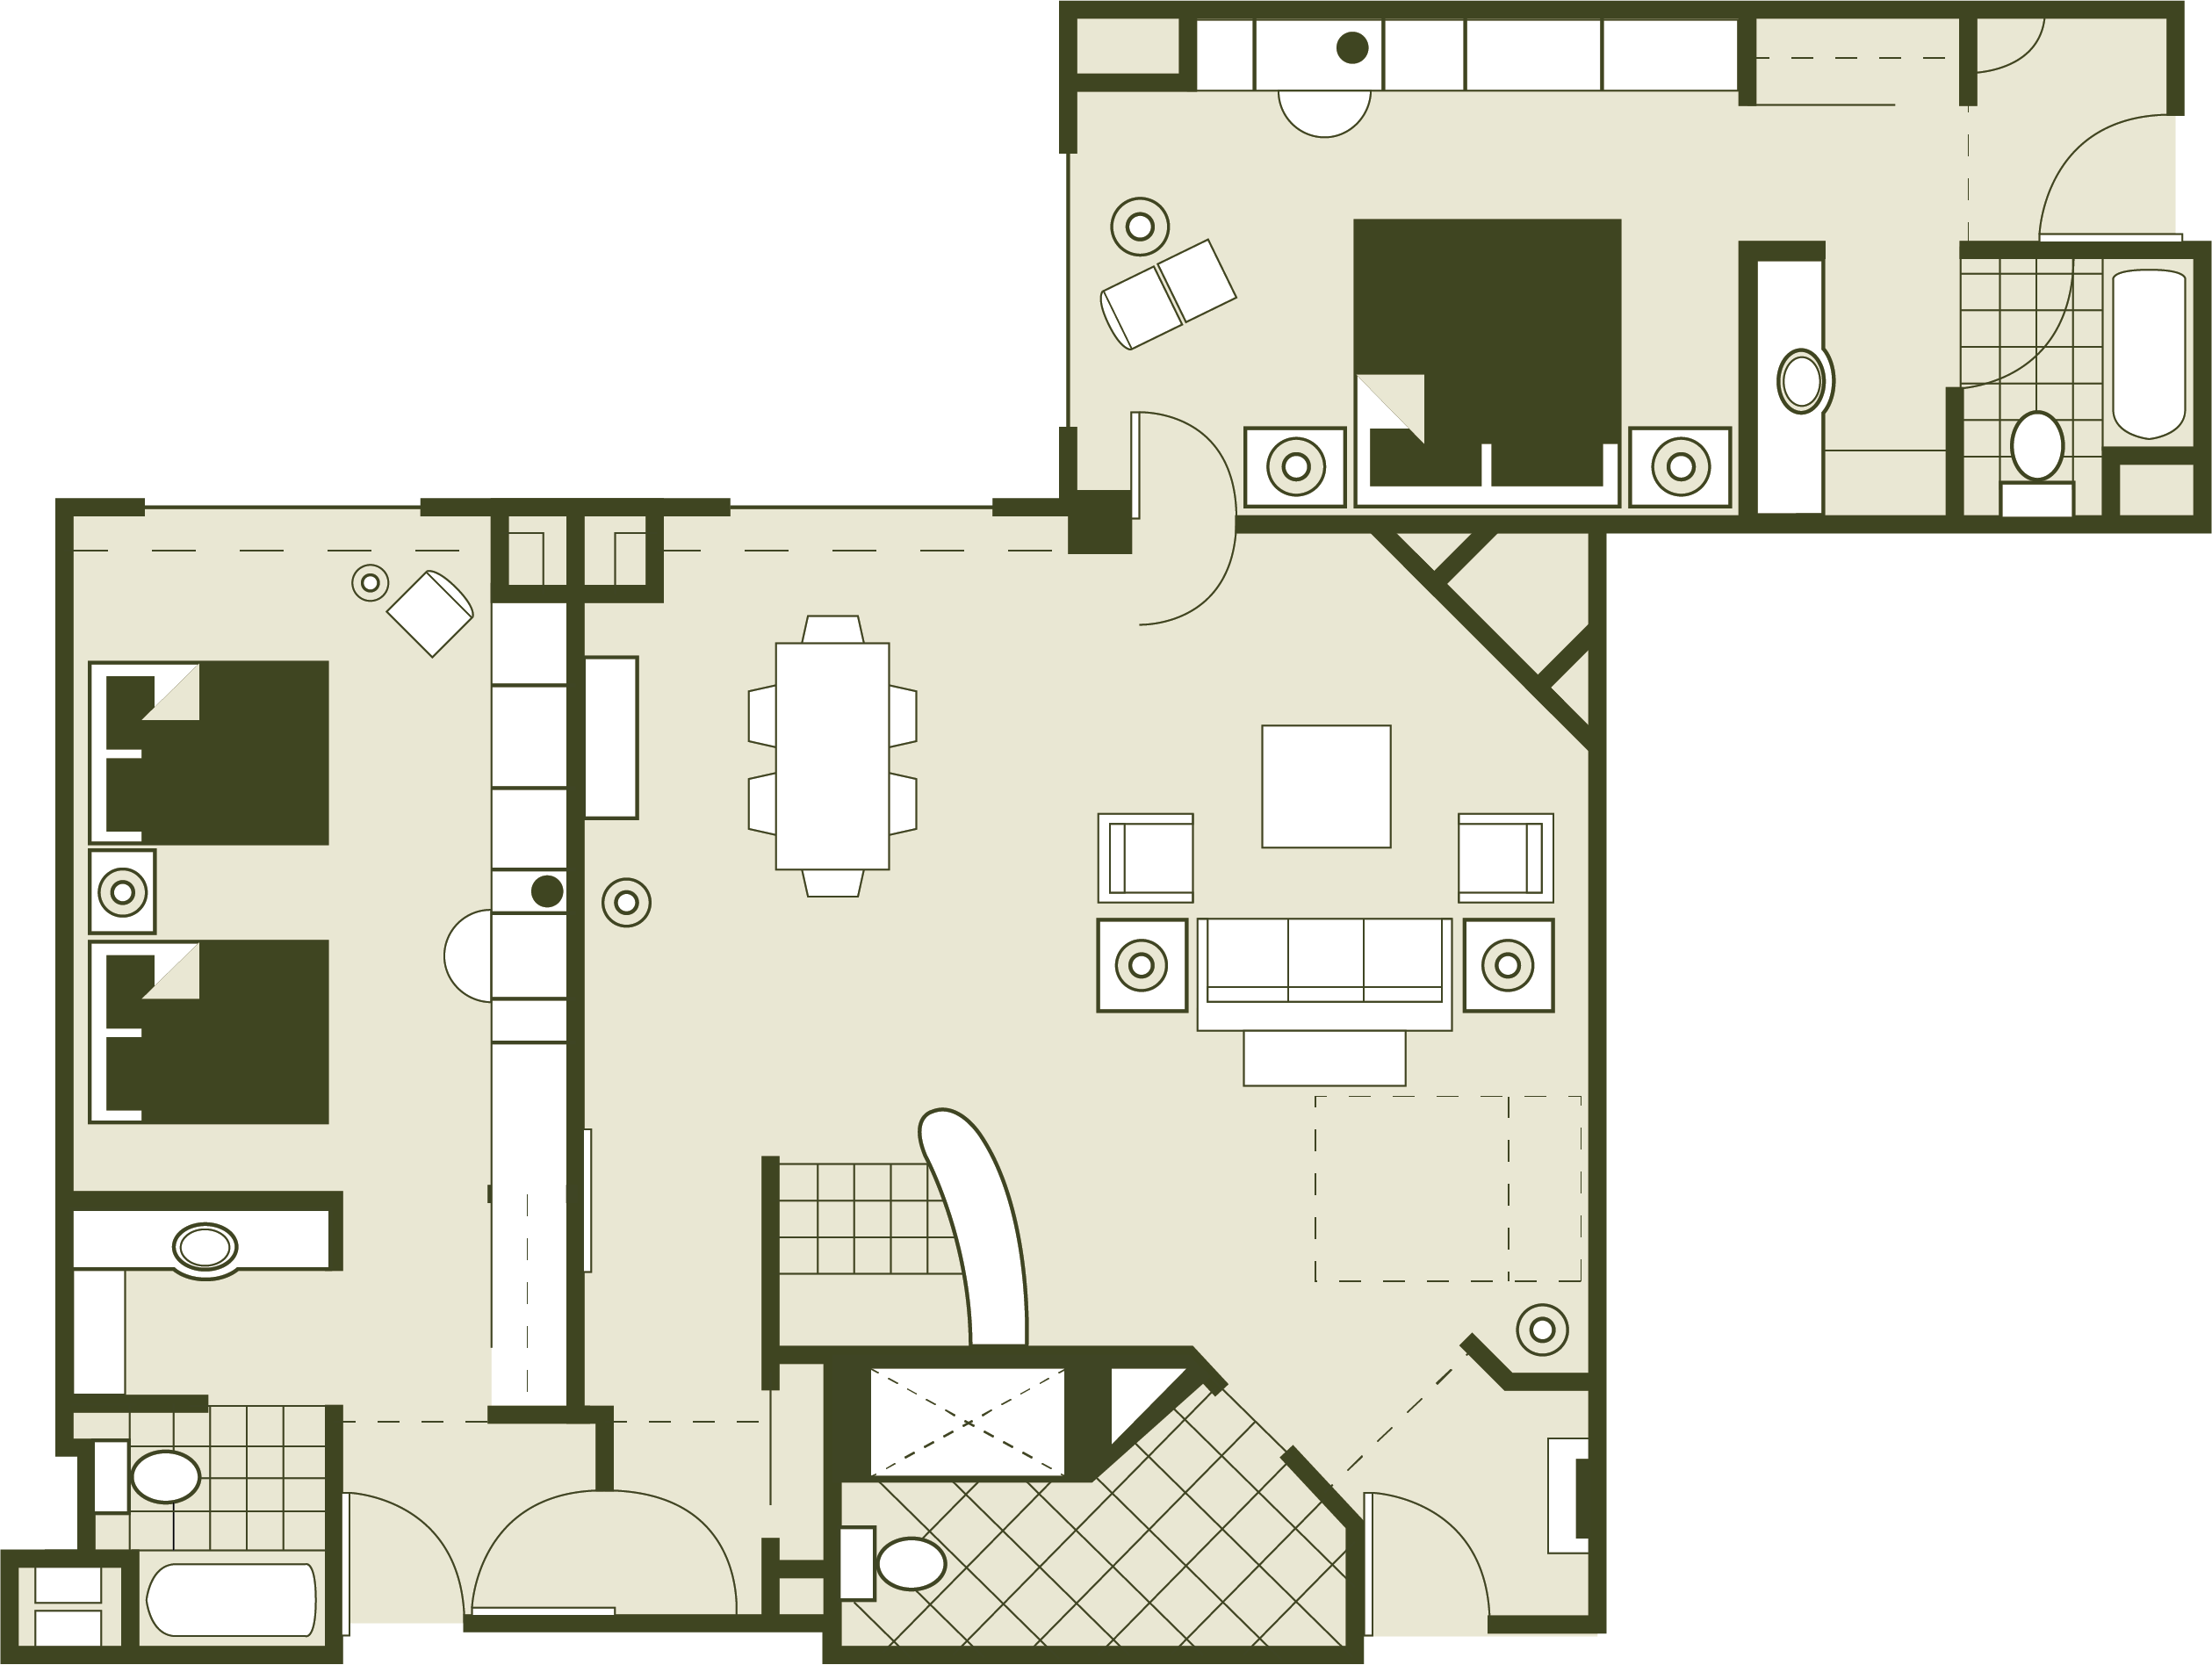 Room Floorplan